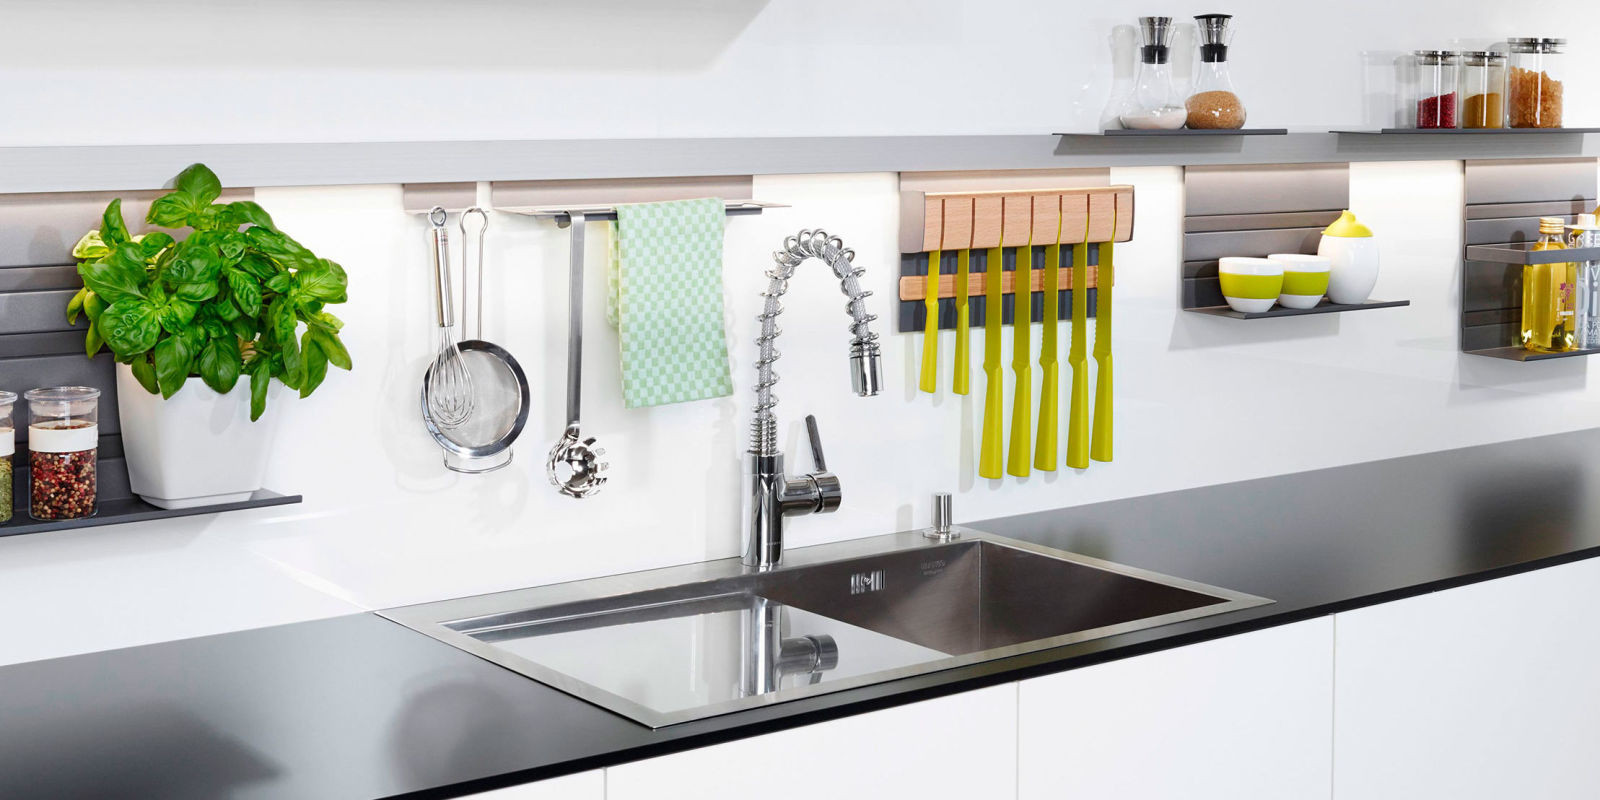 Best ideas about Clever Kitchen Ideas . Save or Pin Clever kitchen storage ideas to clear kitchen clutter Now.